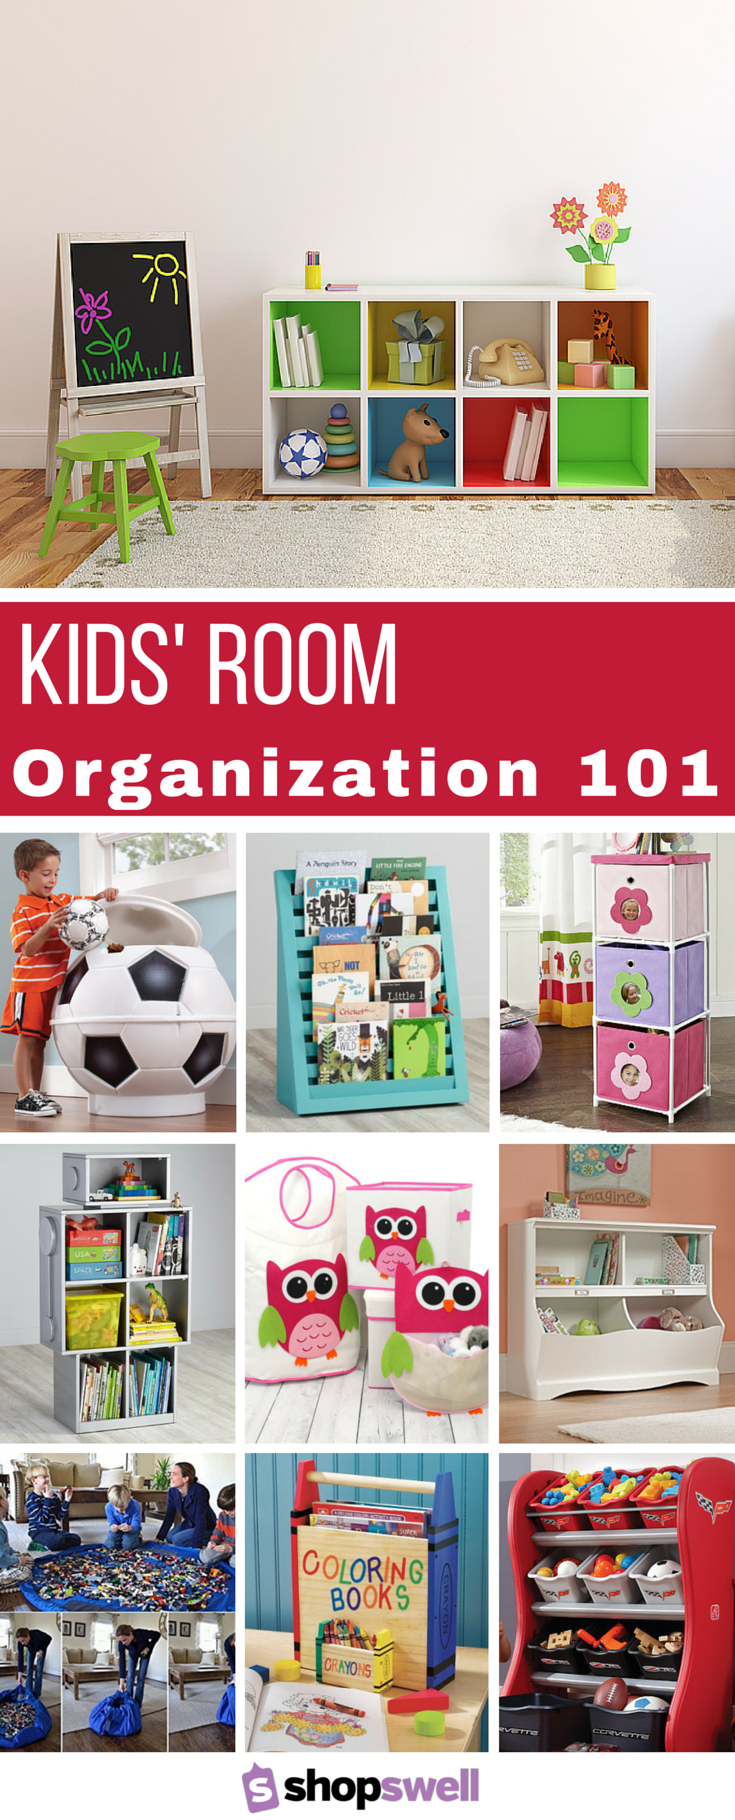 11 Tips For Keeping Kids Toys Organized: 28 Awesome Ways To Organize Your Kids' Room